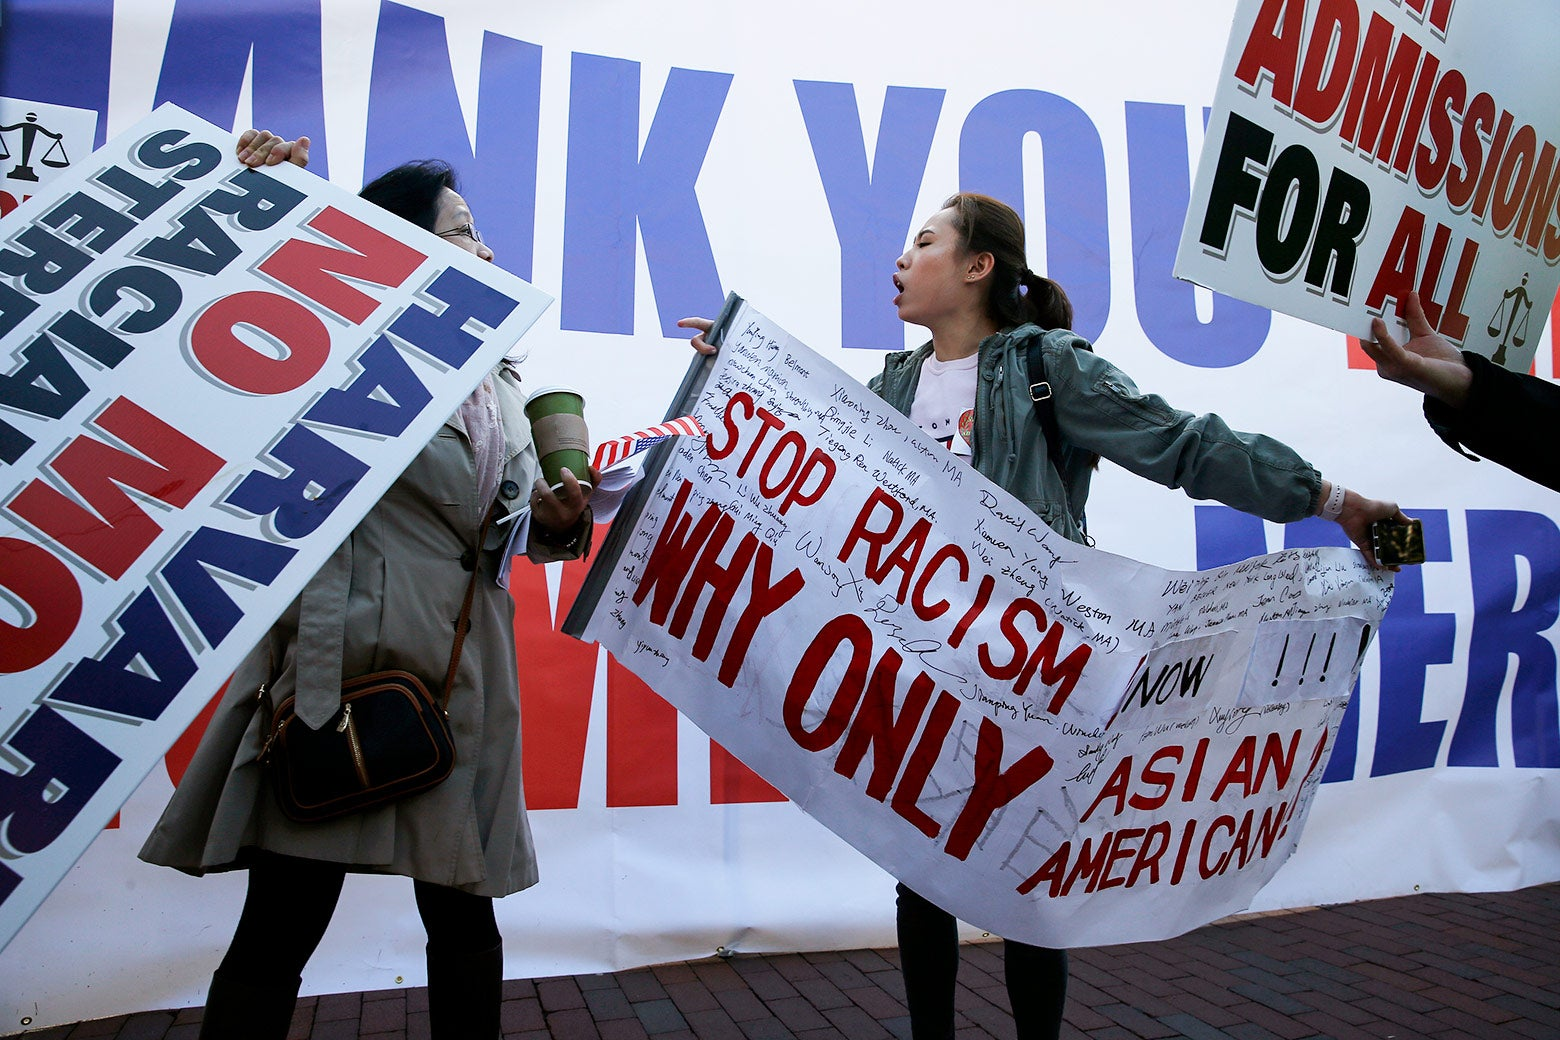 A scuffle between protesters ensues as a group of Chinese Americans who support President Trump raised a banner thanking the president at a rally in Boston to support SFFA's lawsuit against Harvard on Sunday.